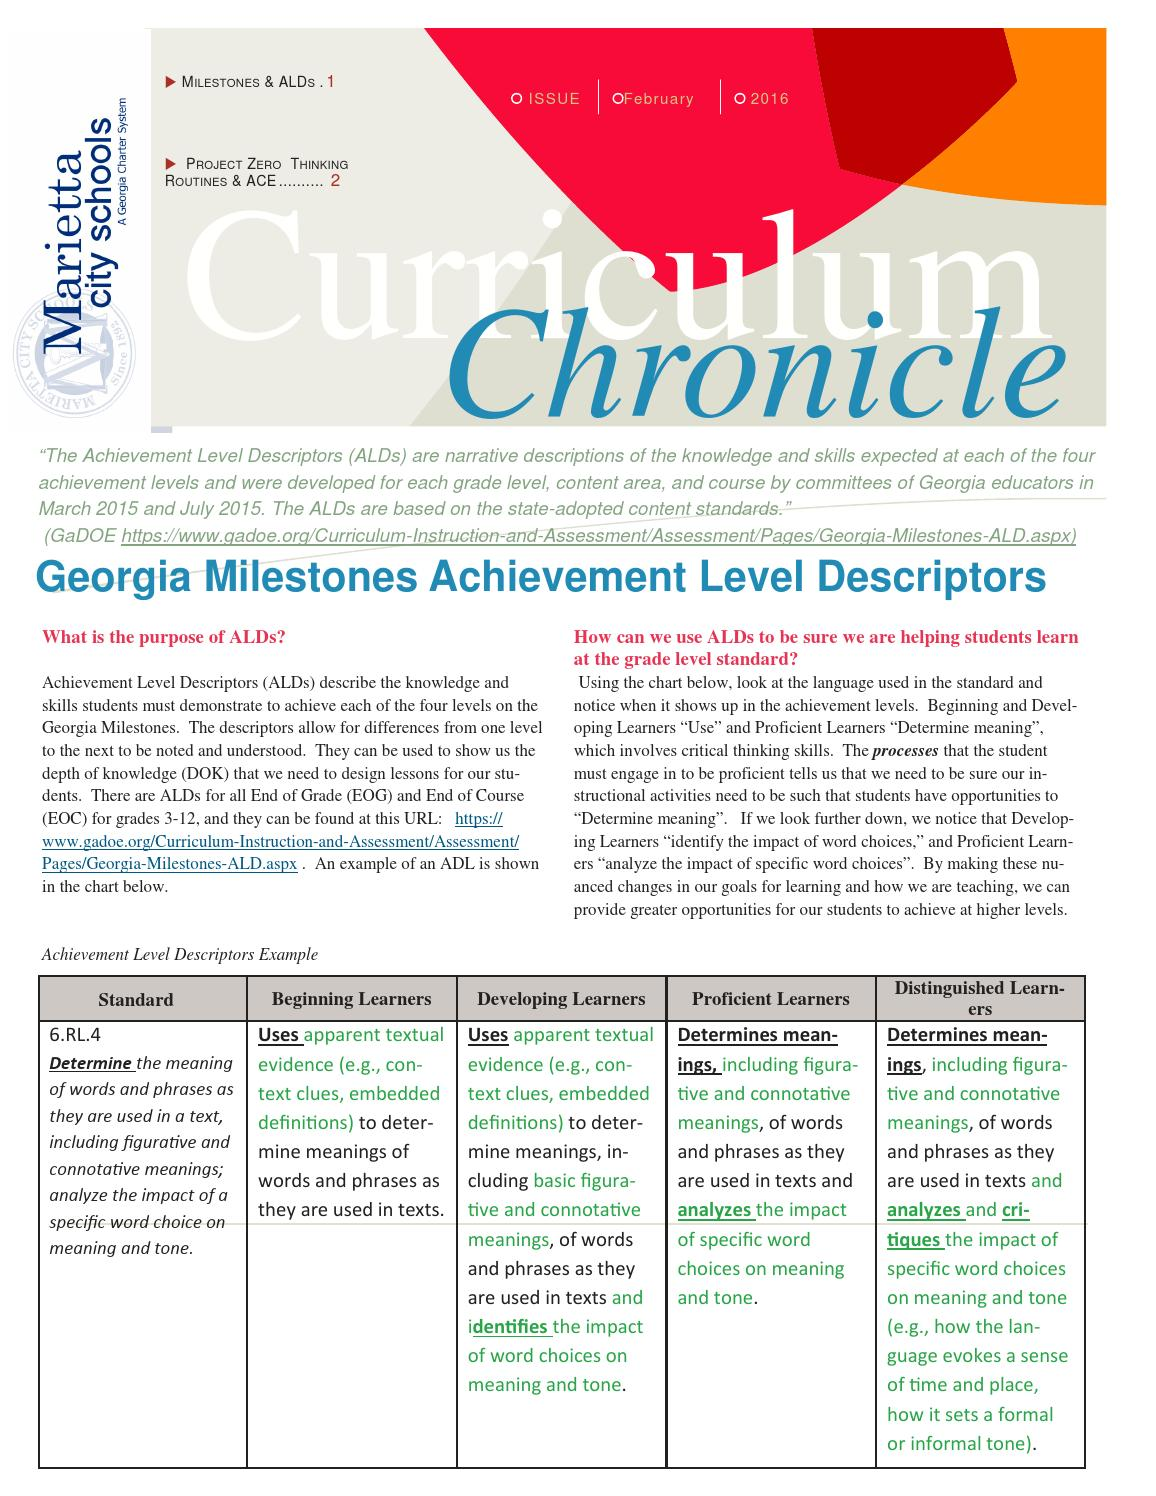 Curriculum Chronicle for Parents - January/February 2016 by Marietta